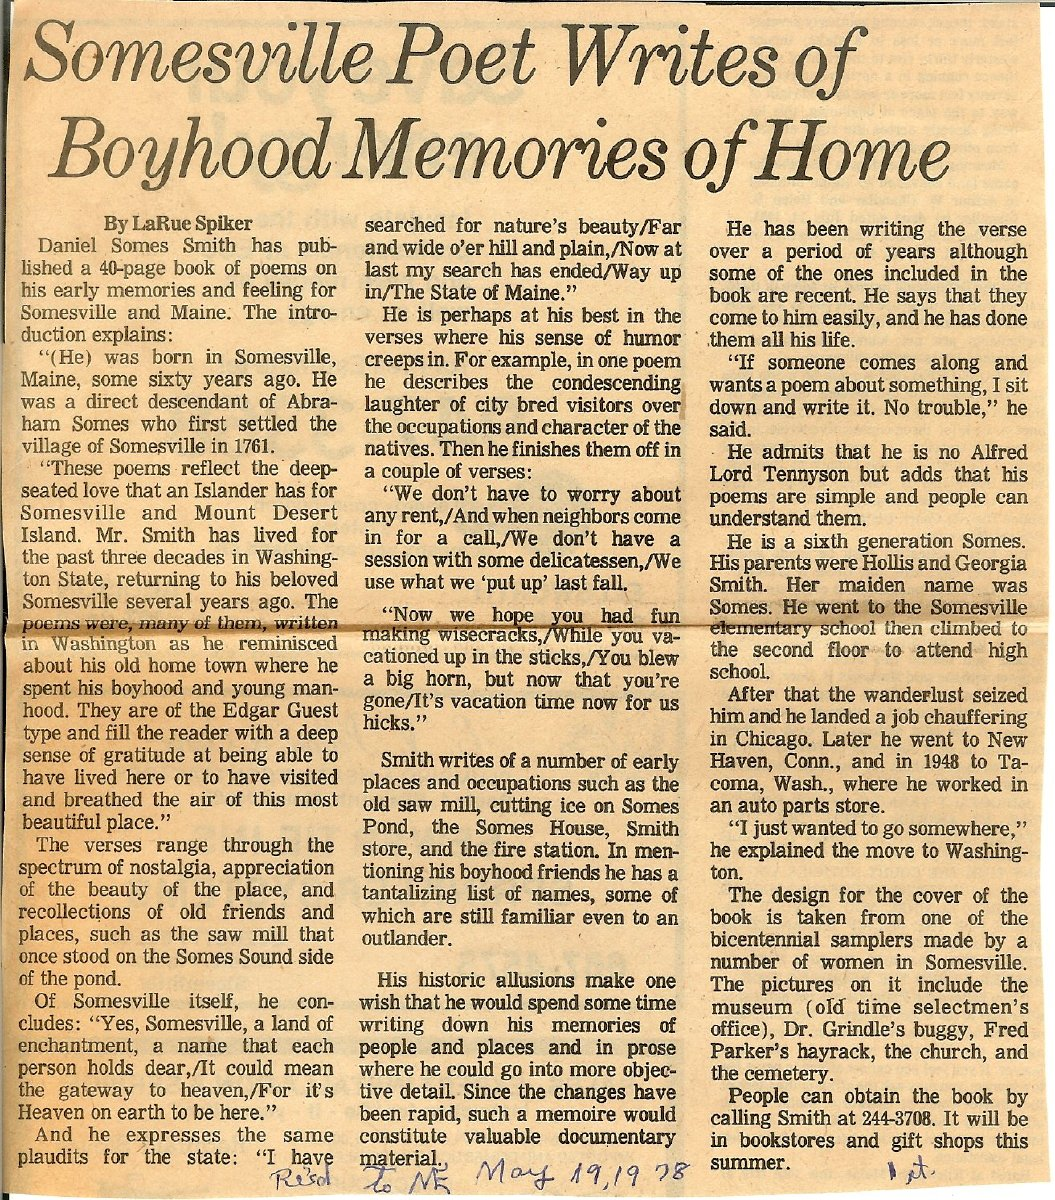 Newspaper clipping about Daniel Somes Smith and his poetry.